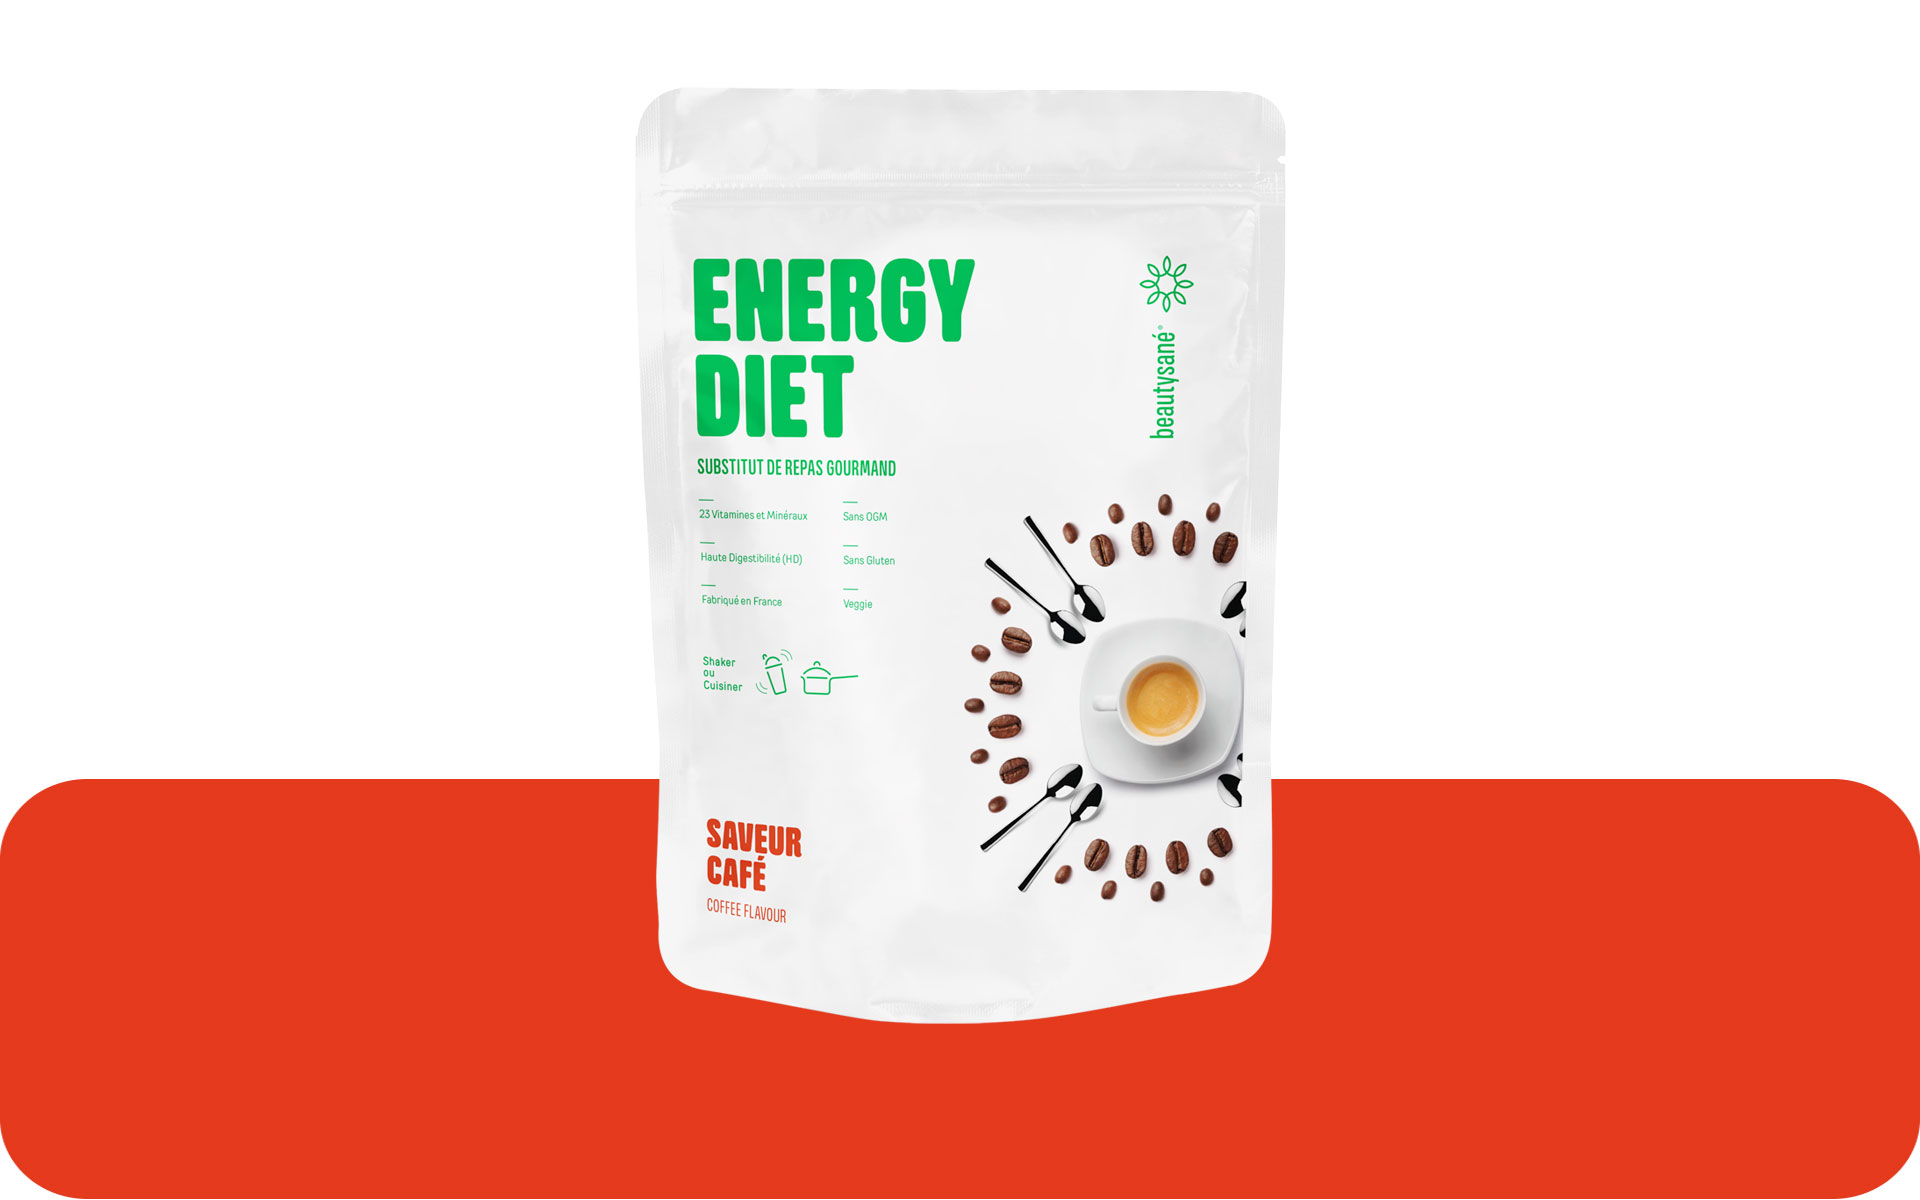 Energy Diet sabor café